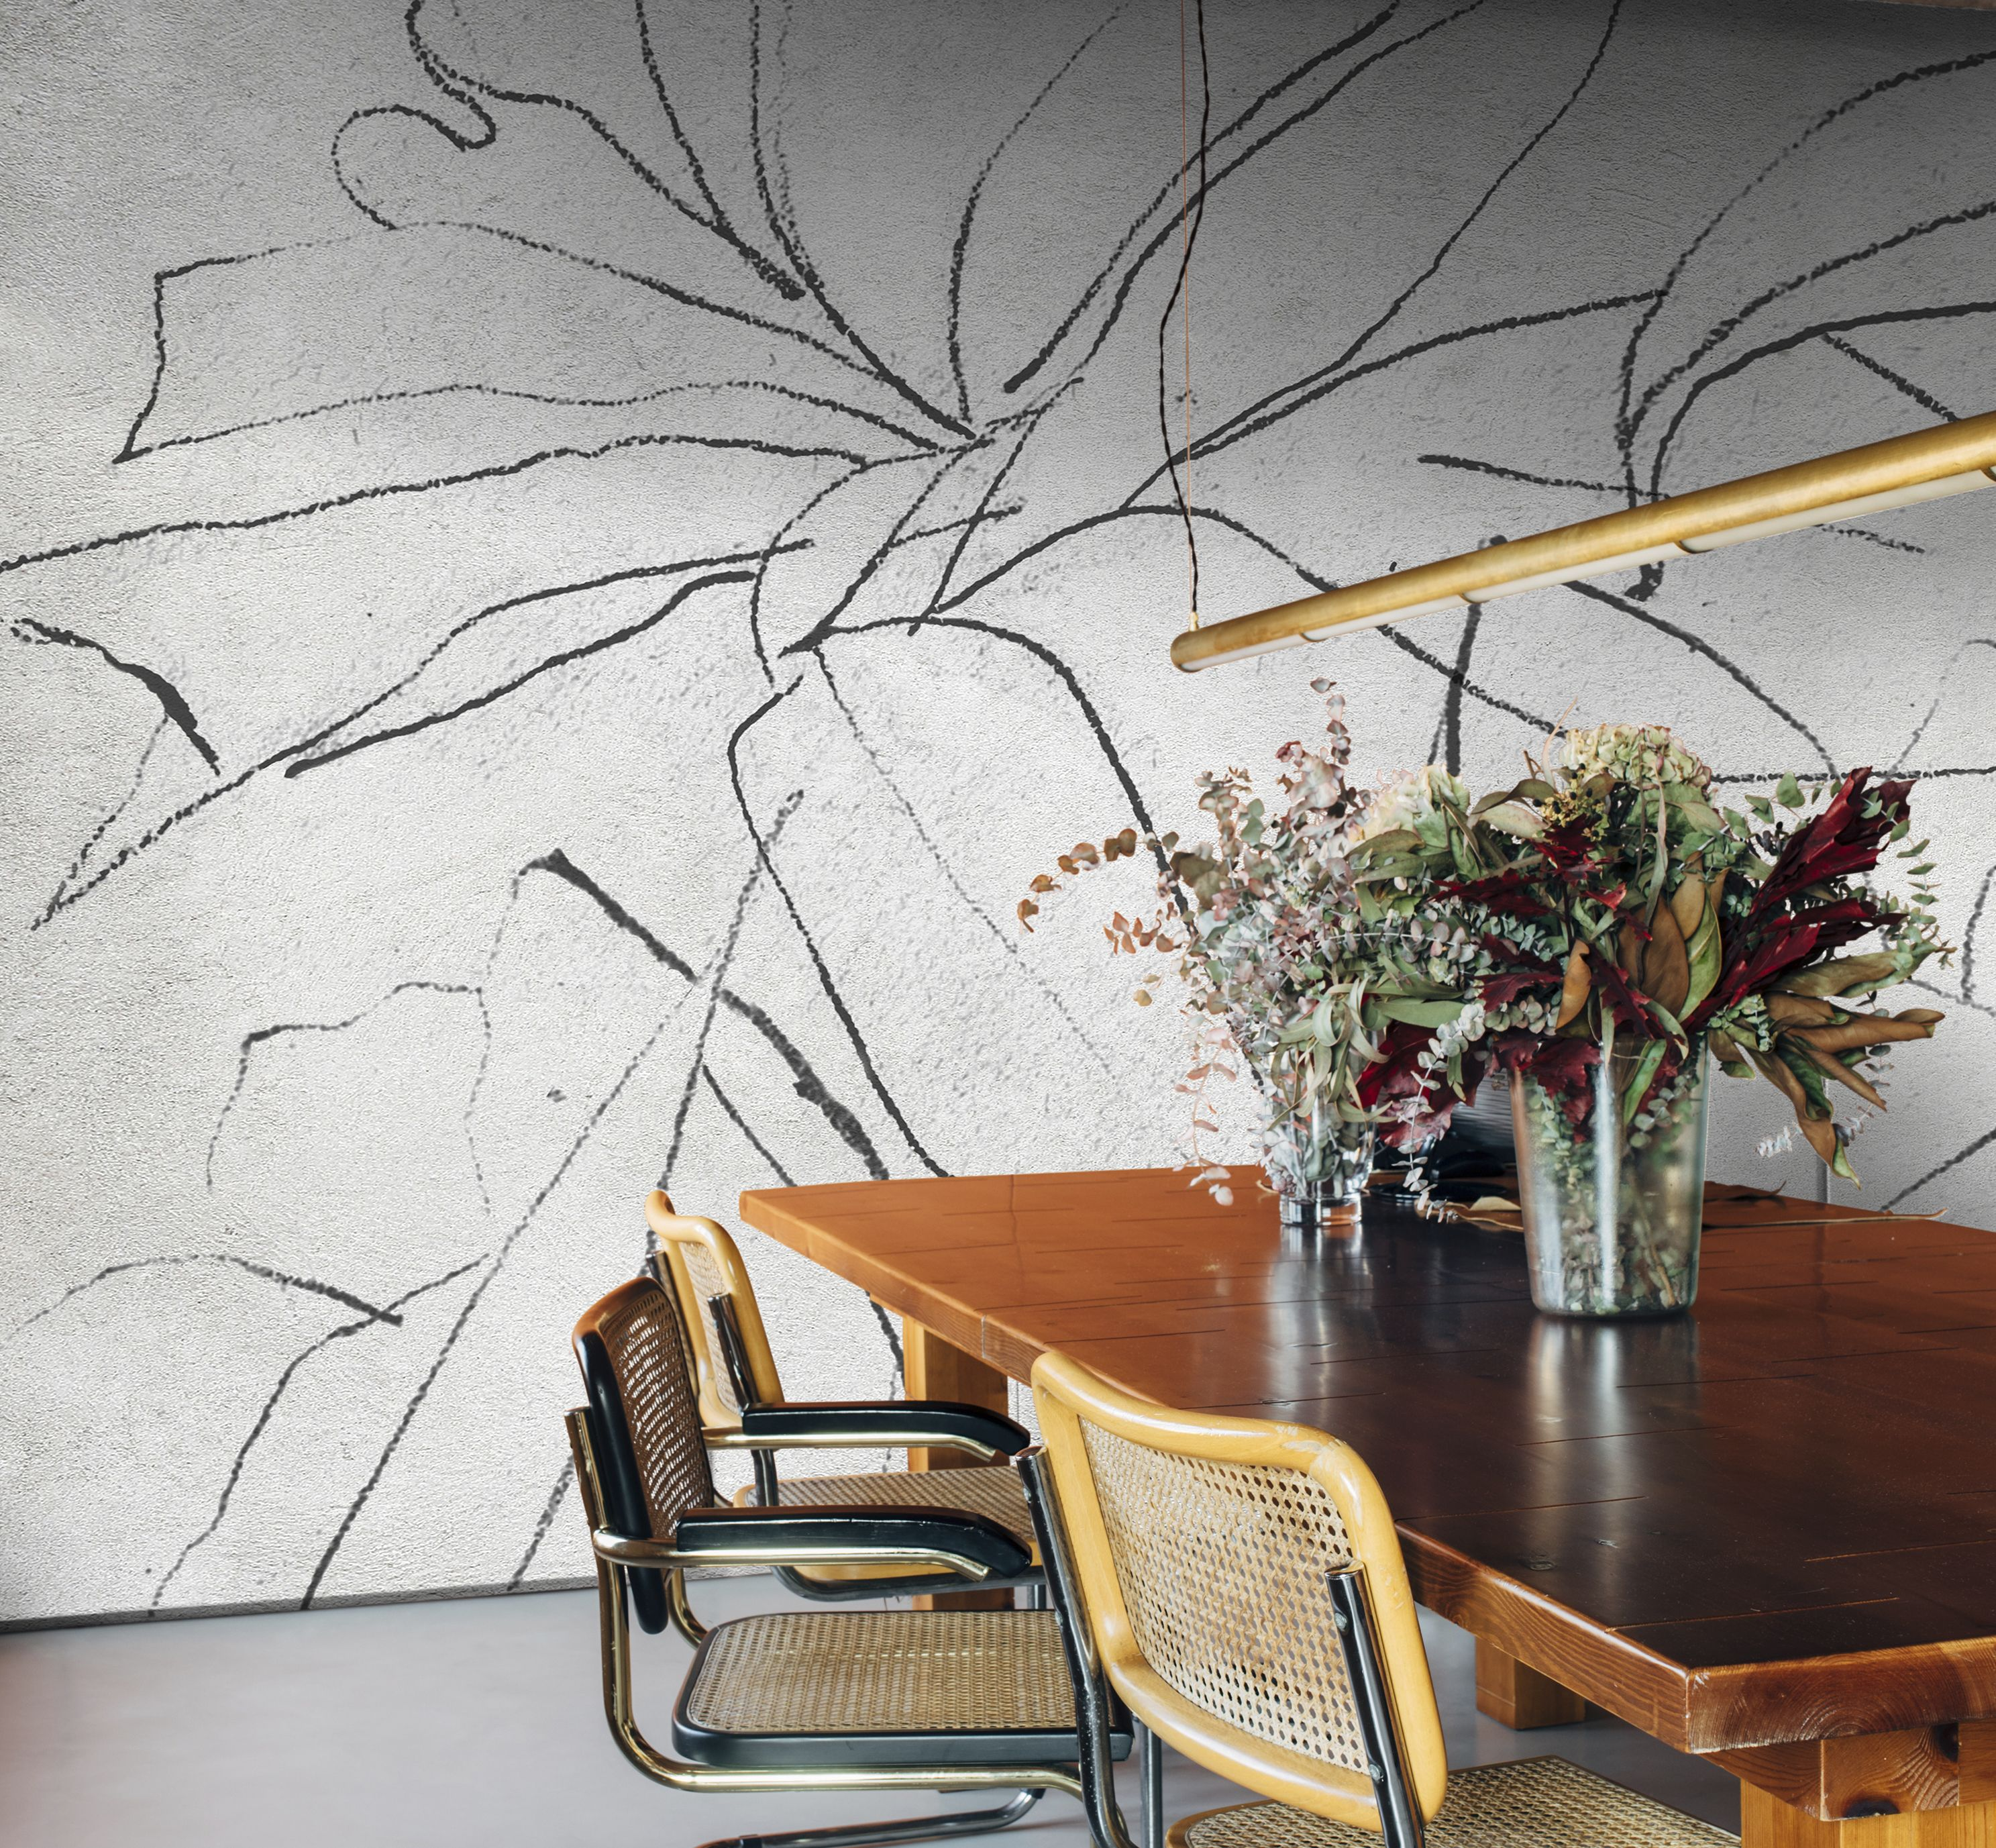 Abstract Flora Mural reference 6800406 nonwoven! Thanks